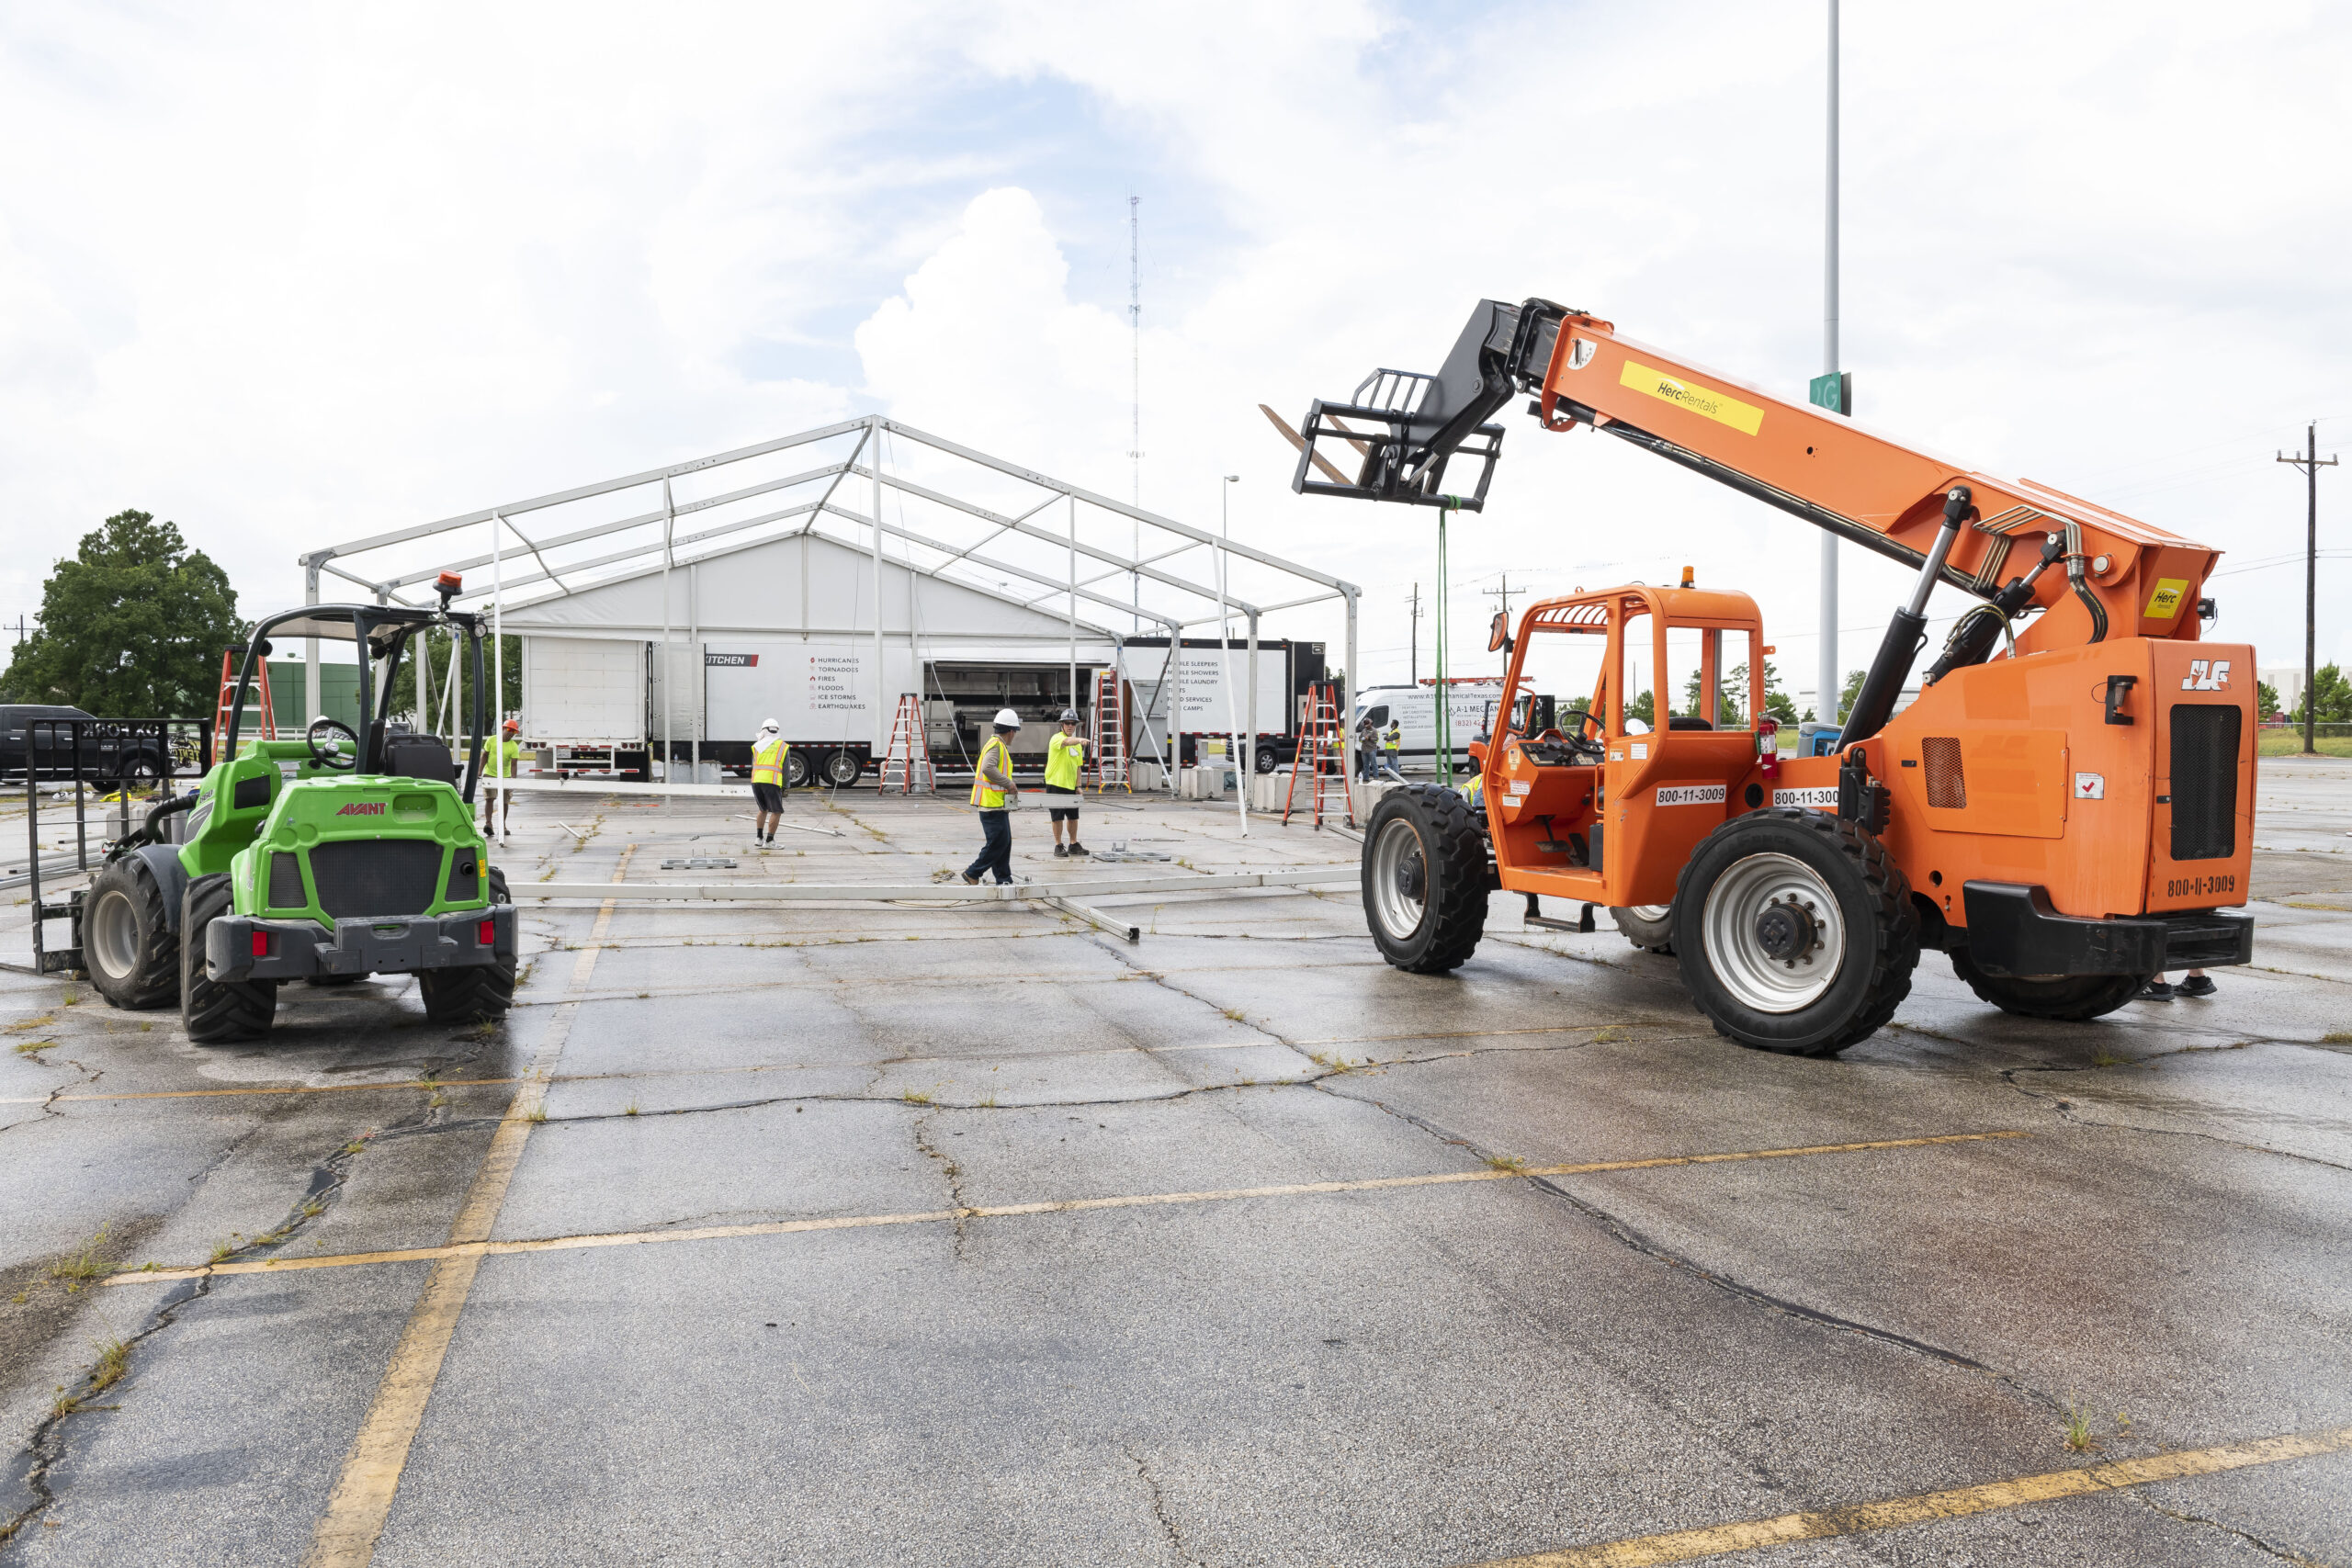 Lodging Solutions/Industrial Tent Systems Temporary Structure for Emergency Relief